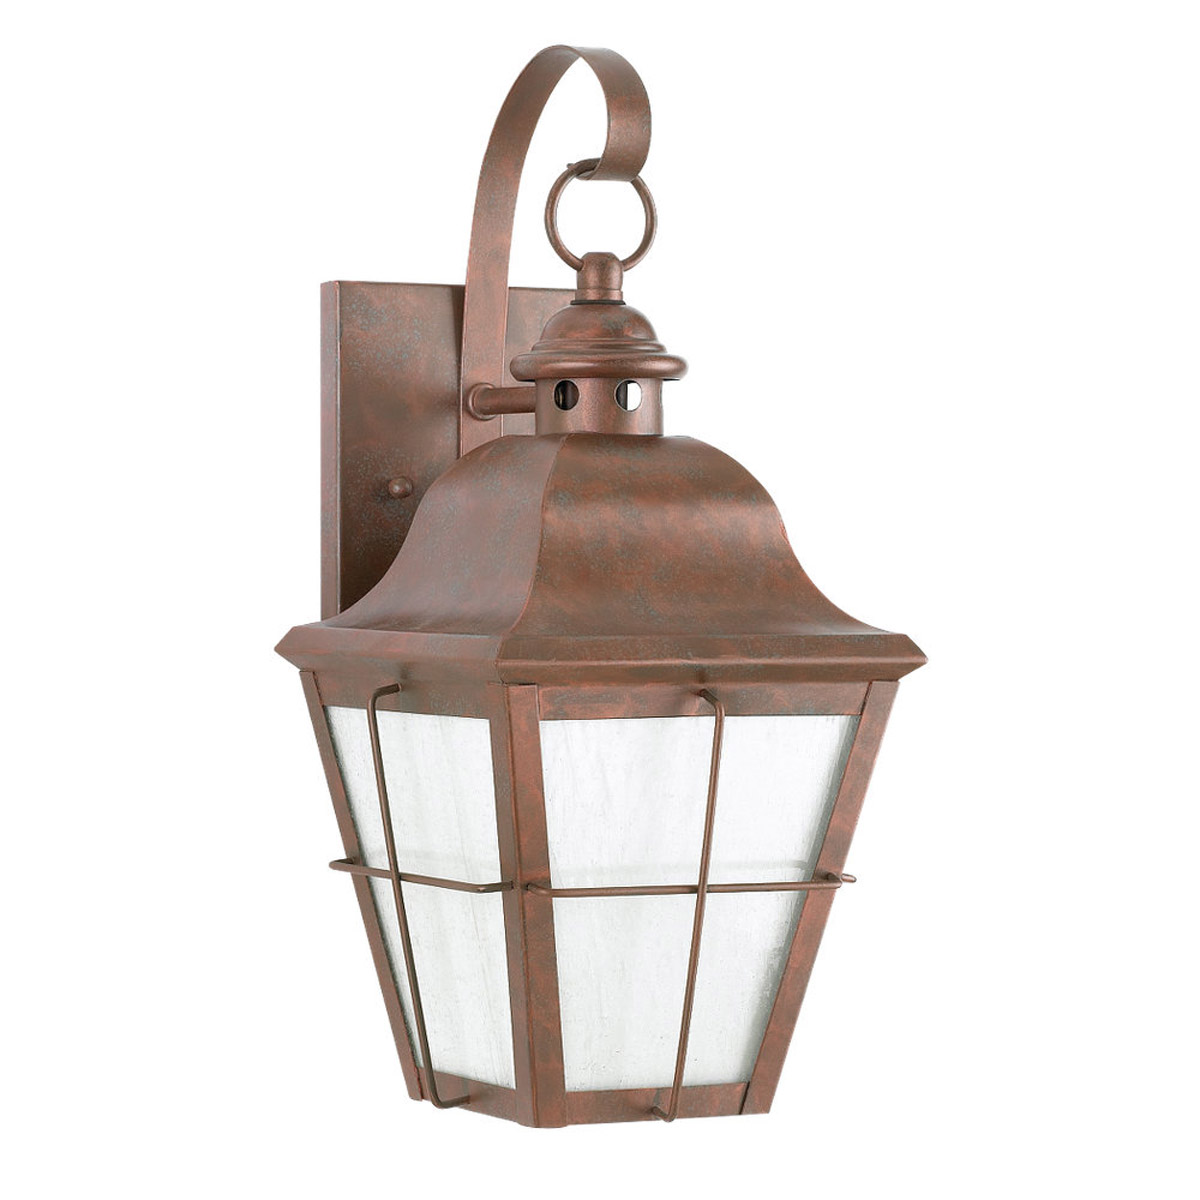 Sea Gull Lighting Chatham 1 Light Outdoor Wall Lantern in Weathered Copper 8463D-44